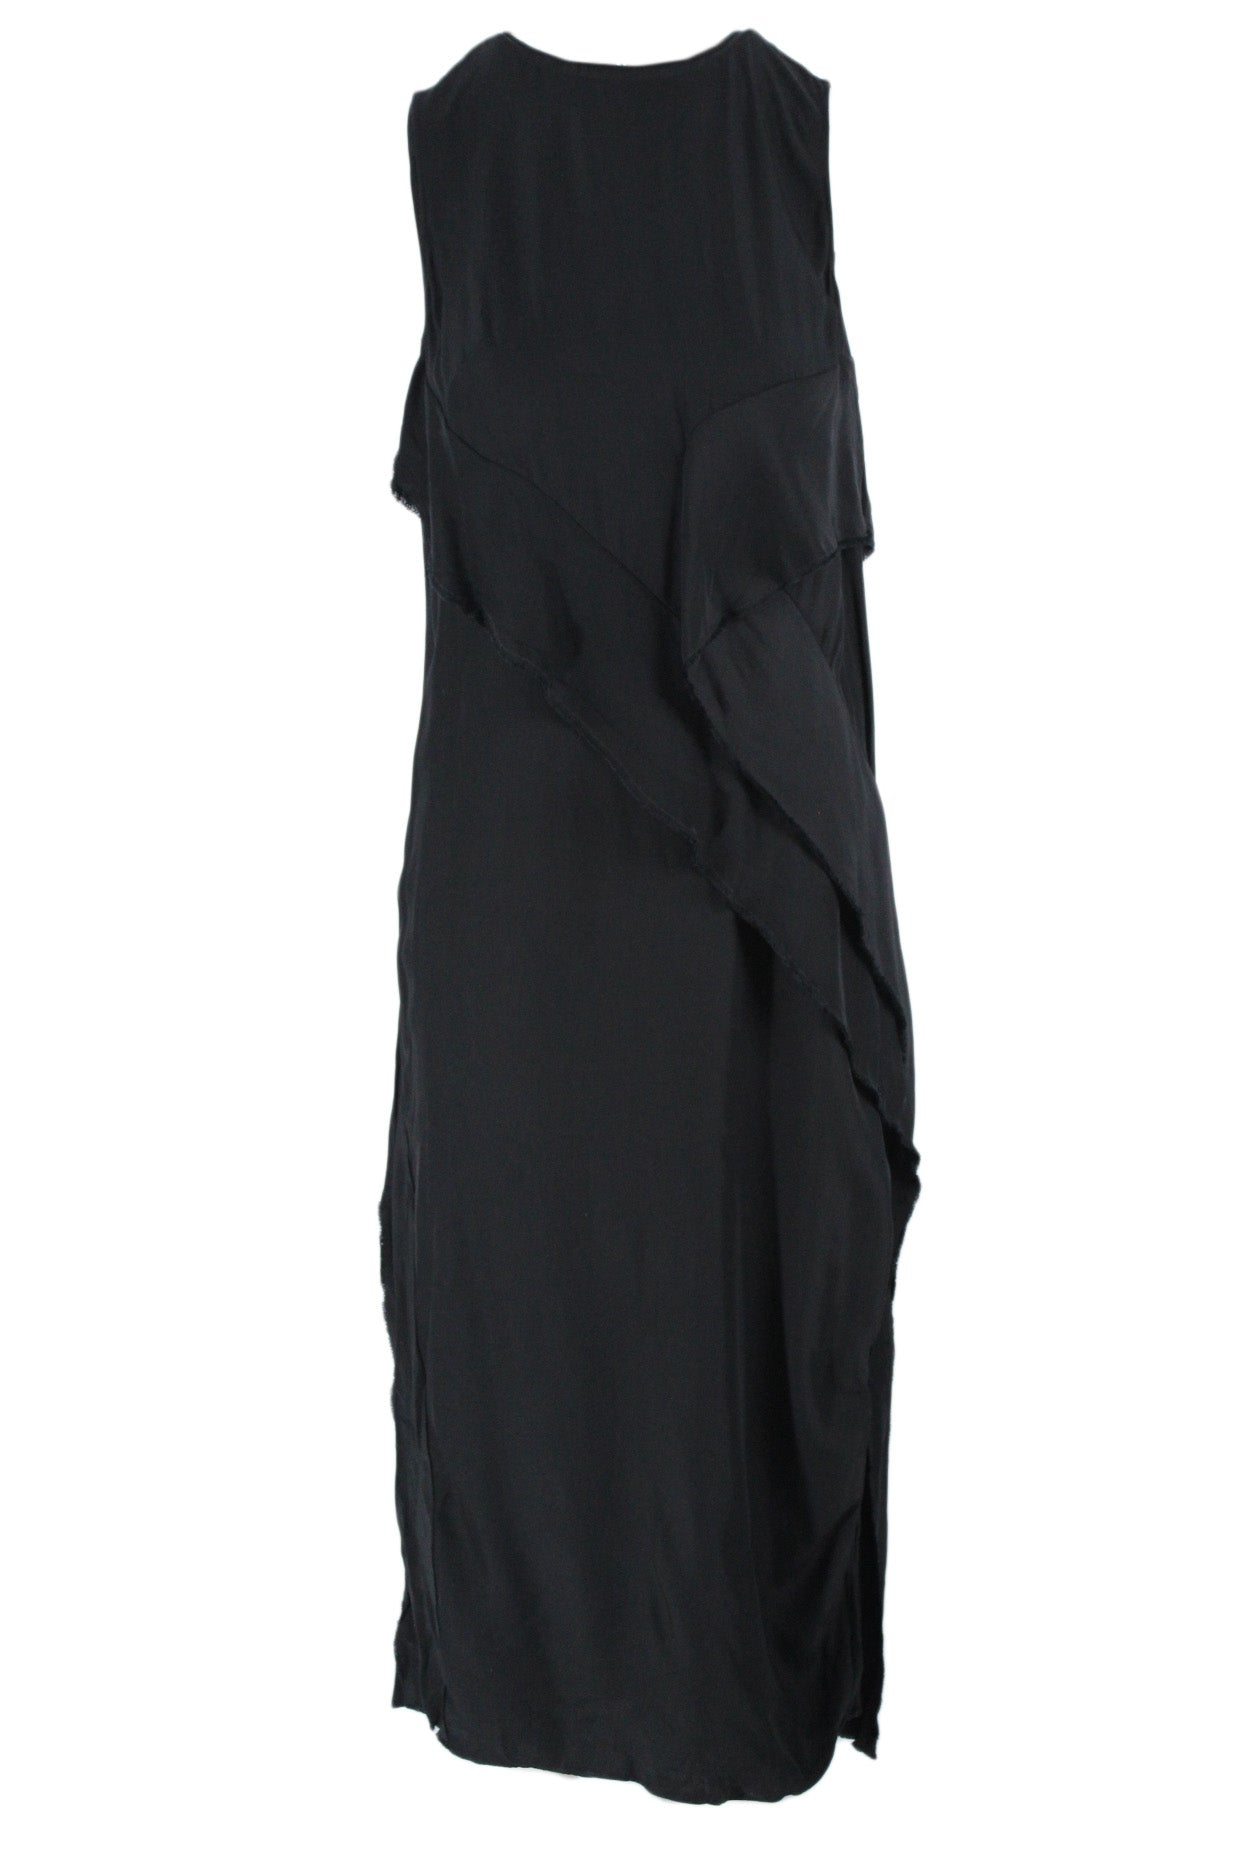 cedric charlier black full length sleeveless sack dress. featuring asymmetrical cascading ruffle panels, side slits on both sides, and back zip closure.